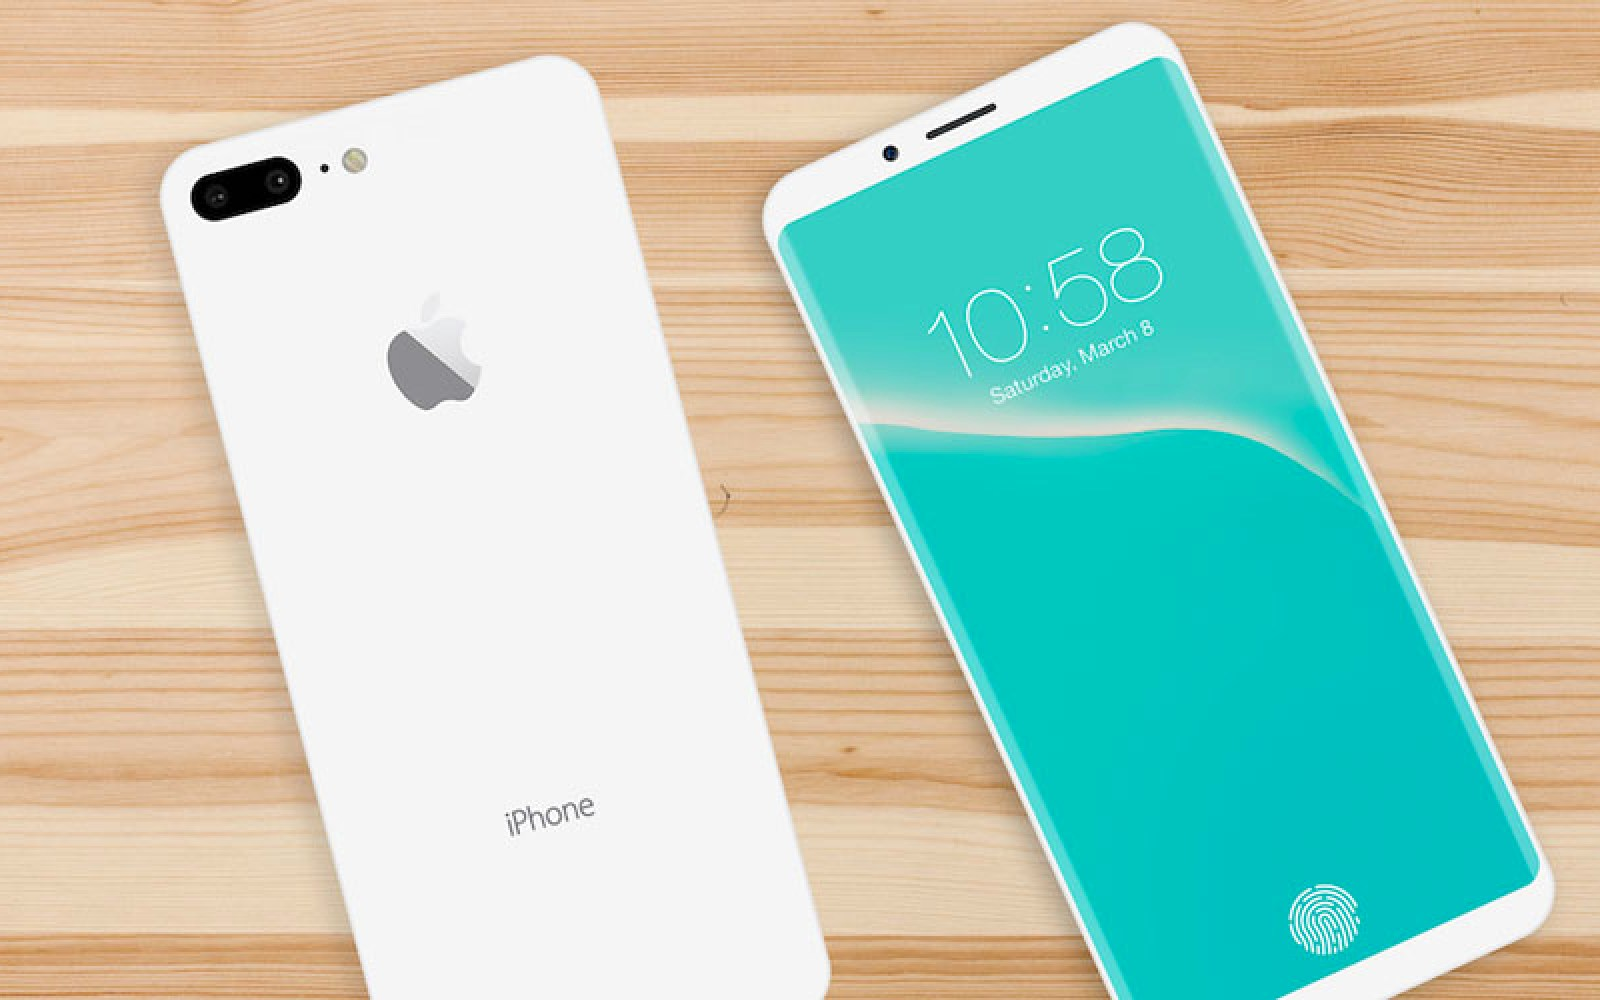 This could be our best look yet at what to expect from the iPhone 8 [Gallery]